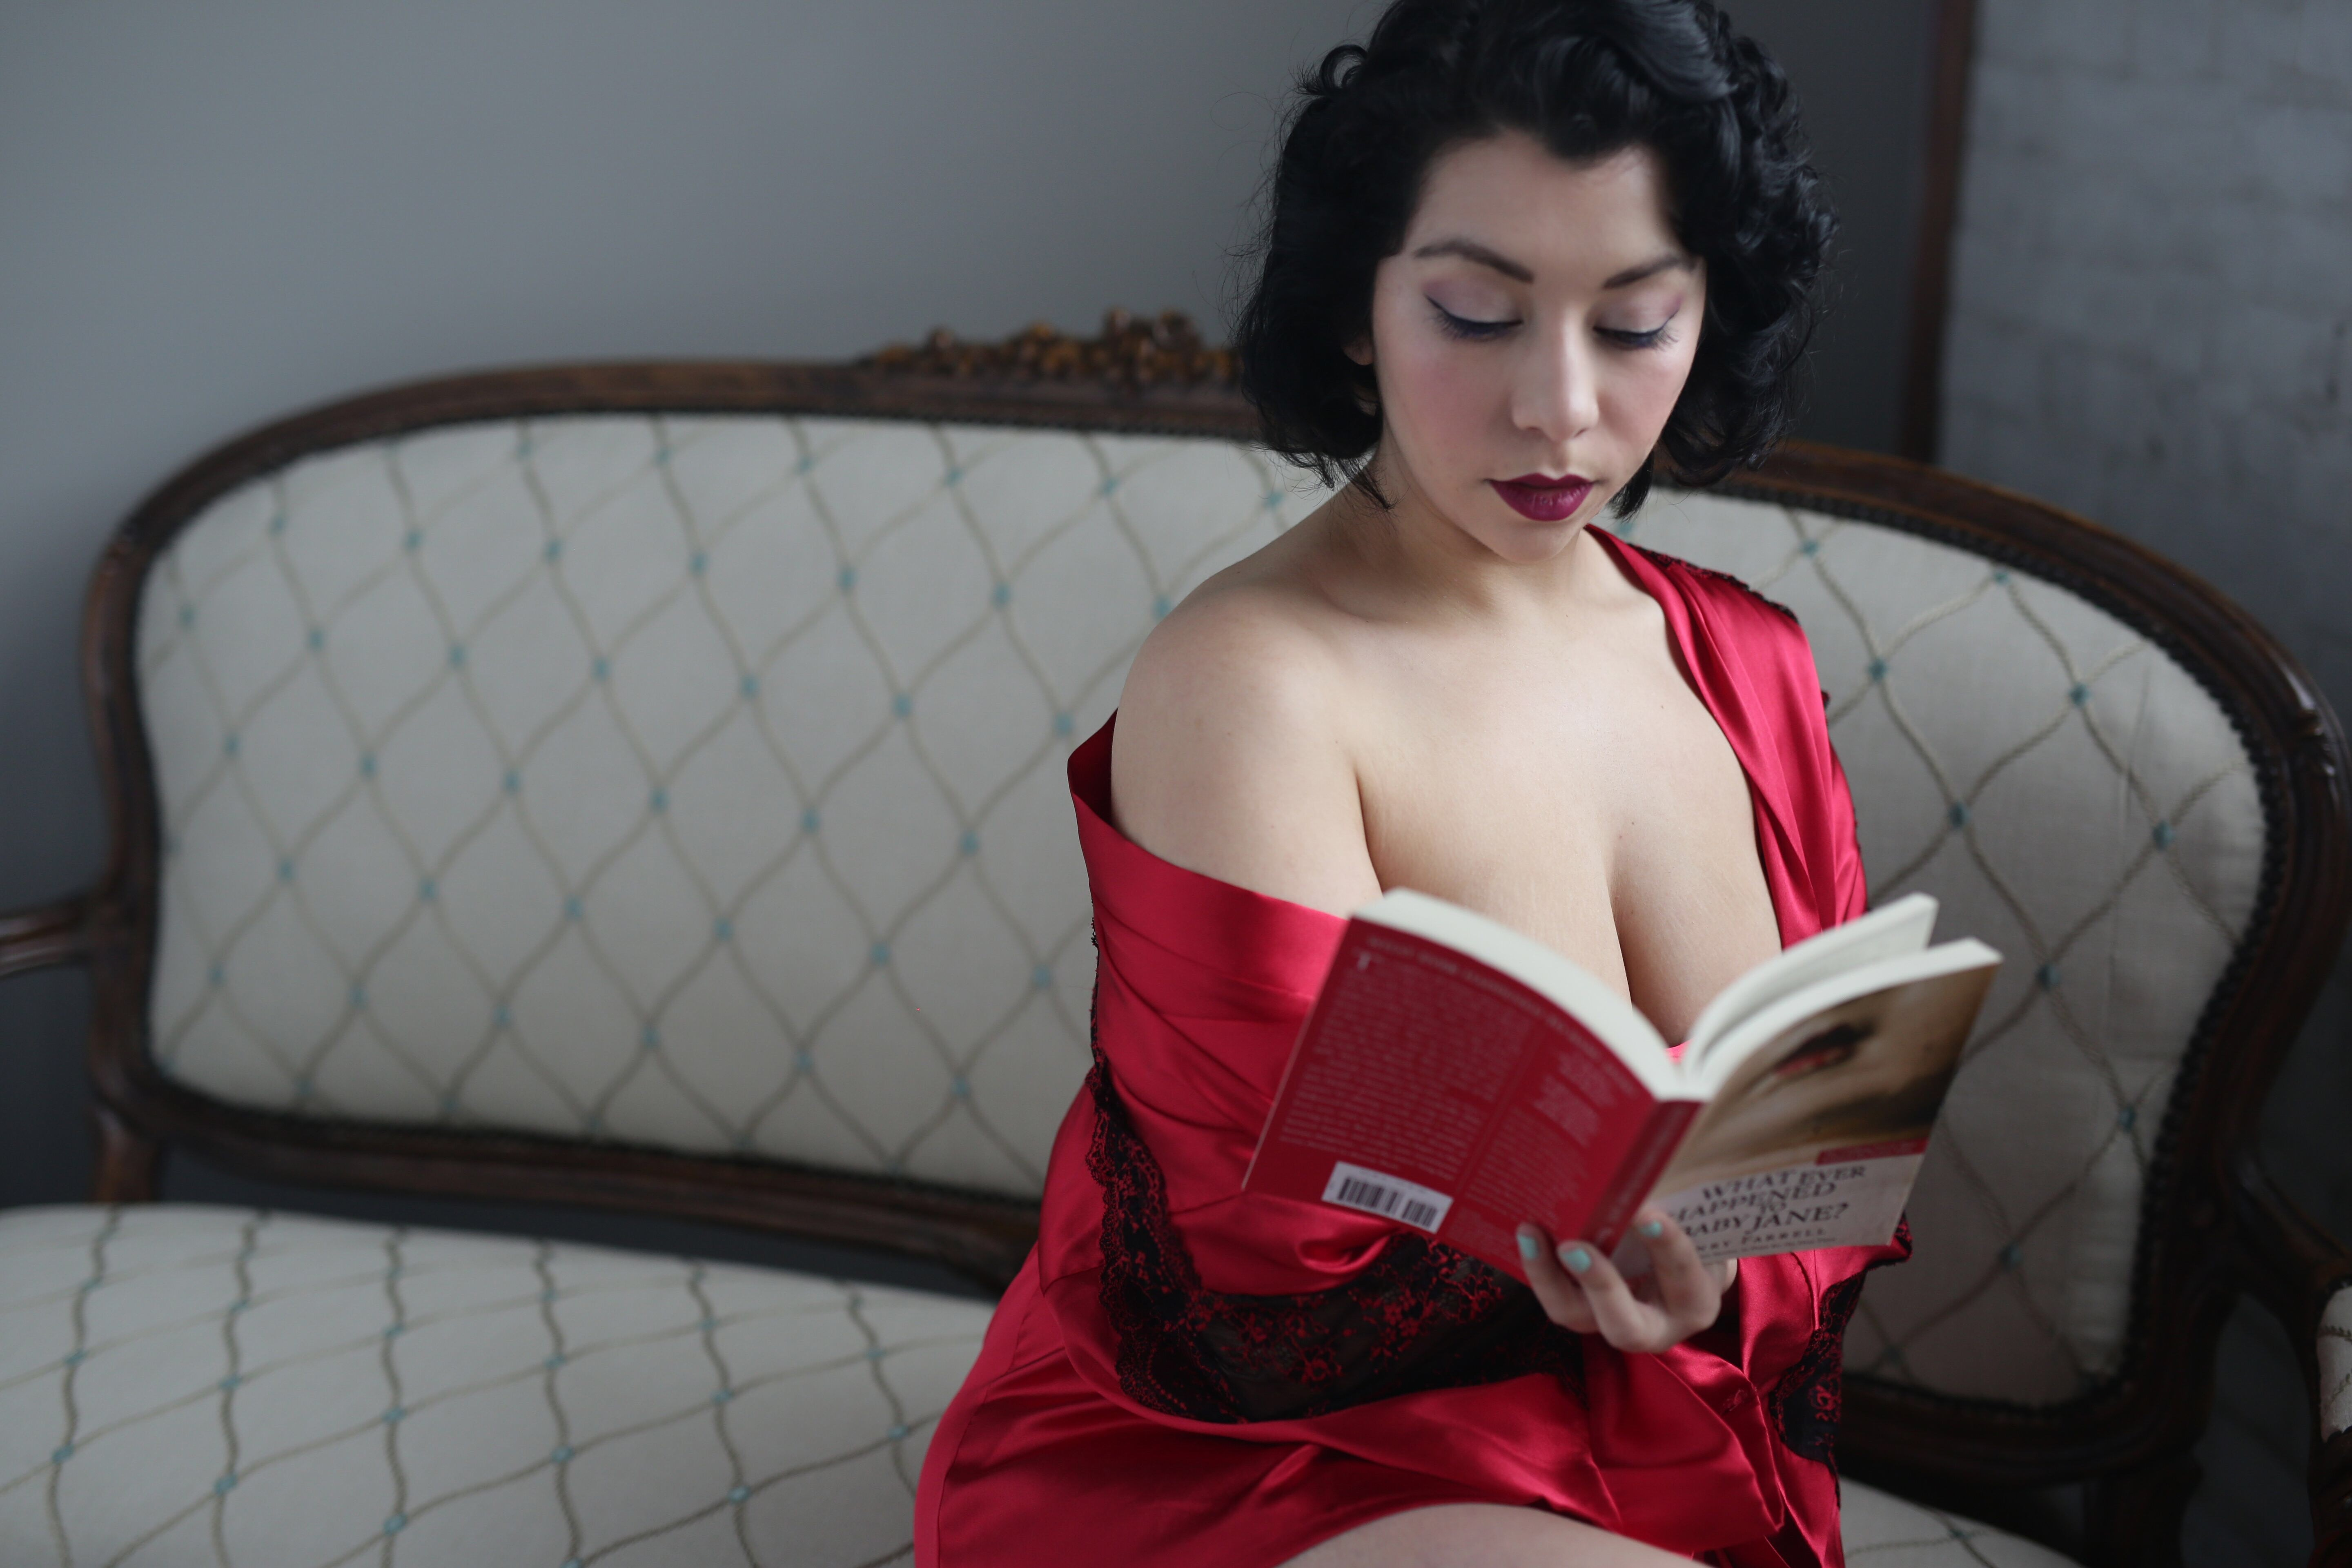 All Naked Girls Pictures this month's naked girls reading puts a new spin on nudie